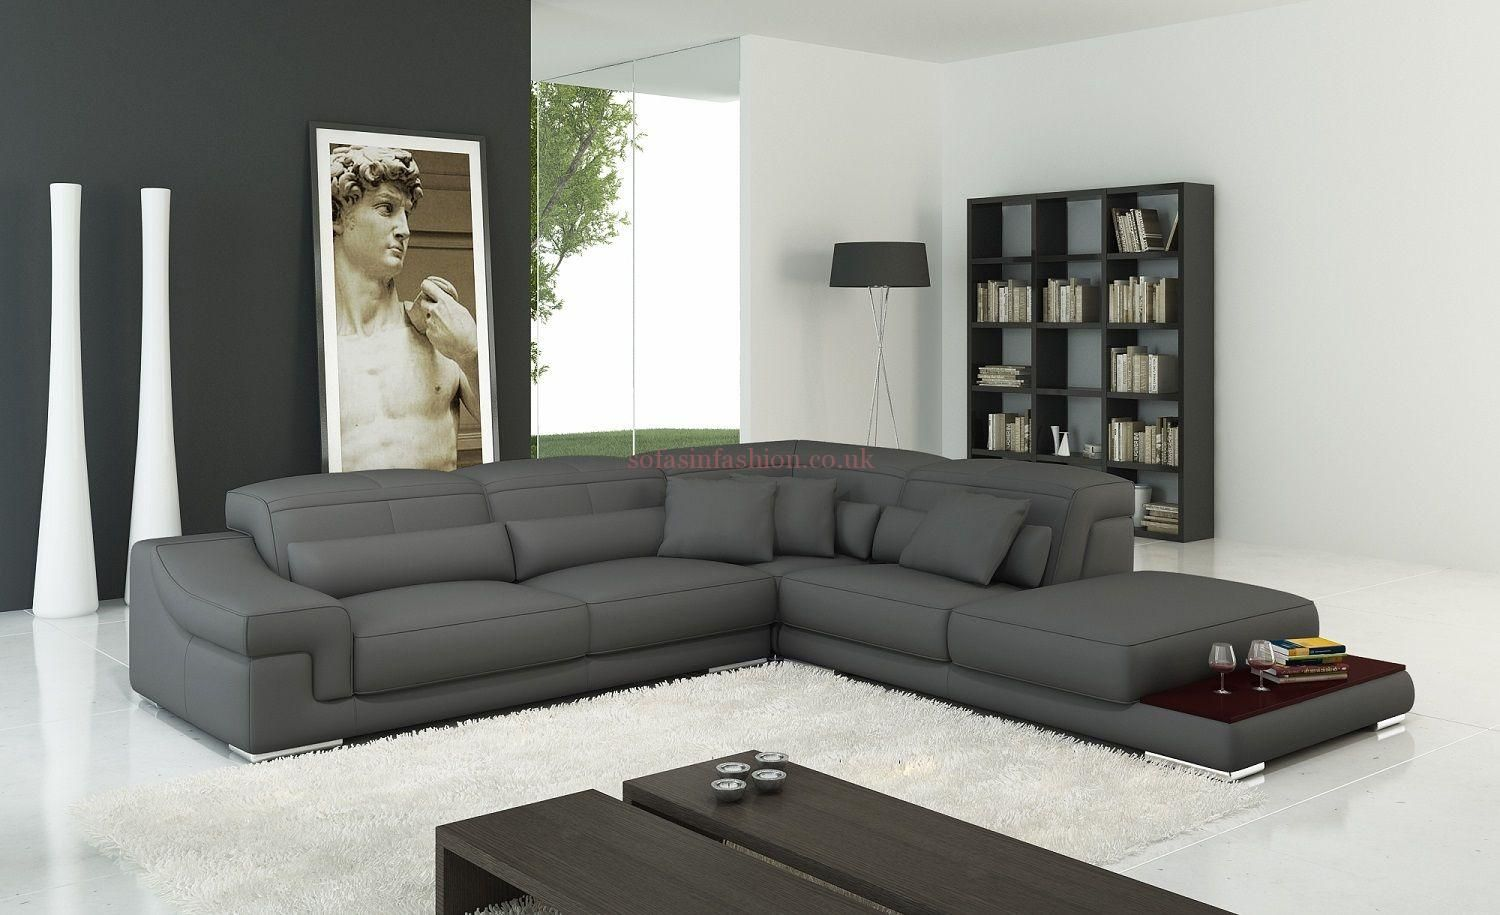 best 20+ leather sofas uk ideas on pinterest | brown leather